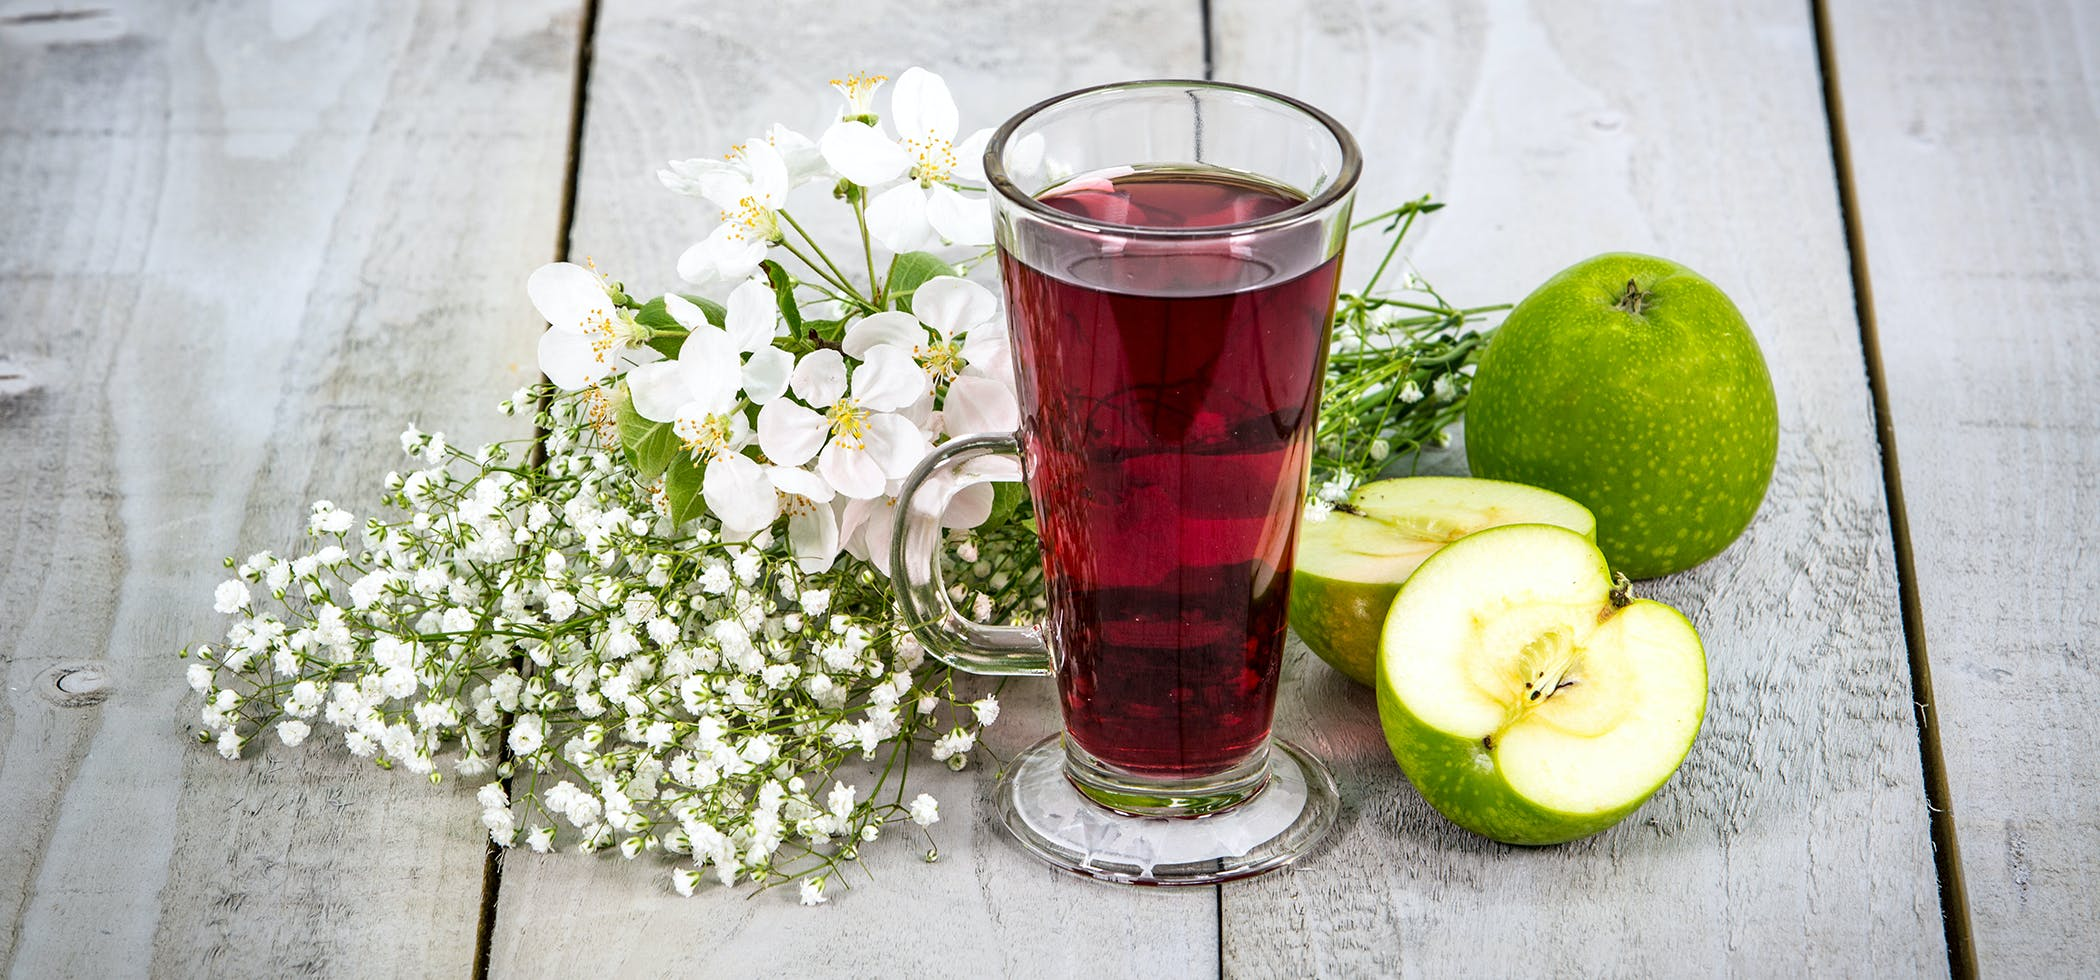 Cranberry and Apple Detox Juice